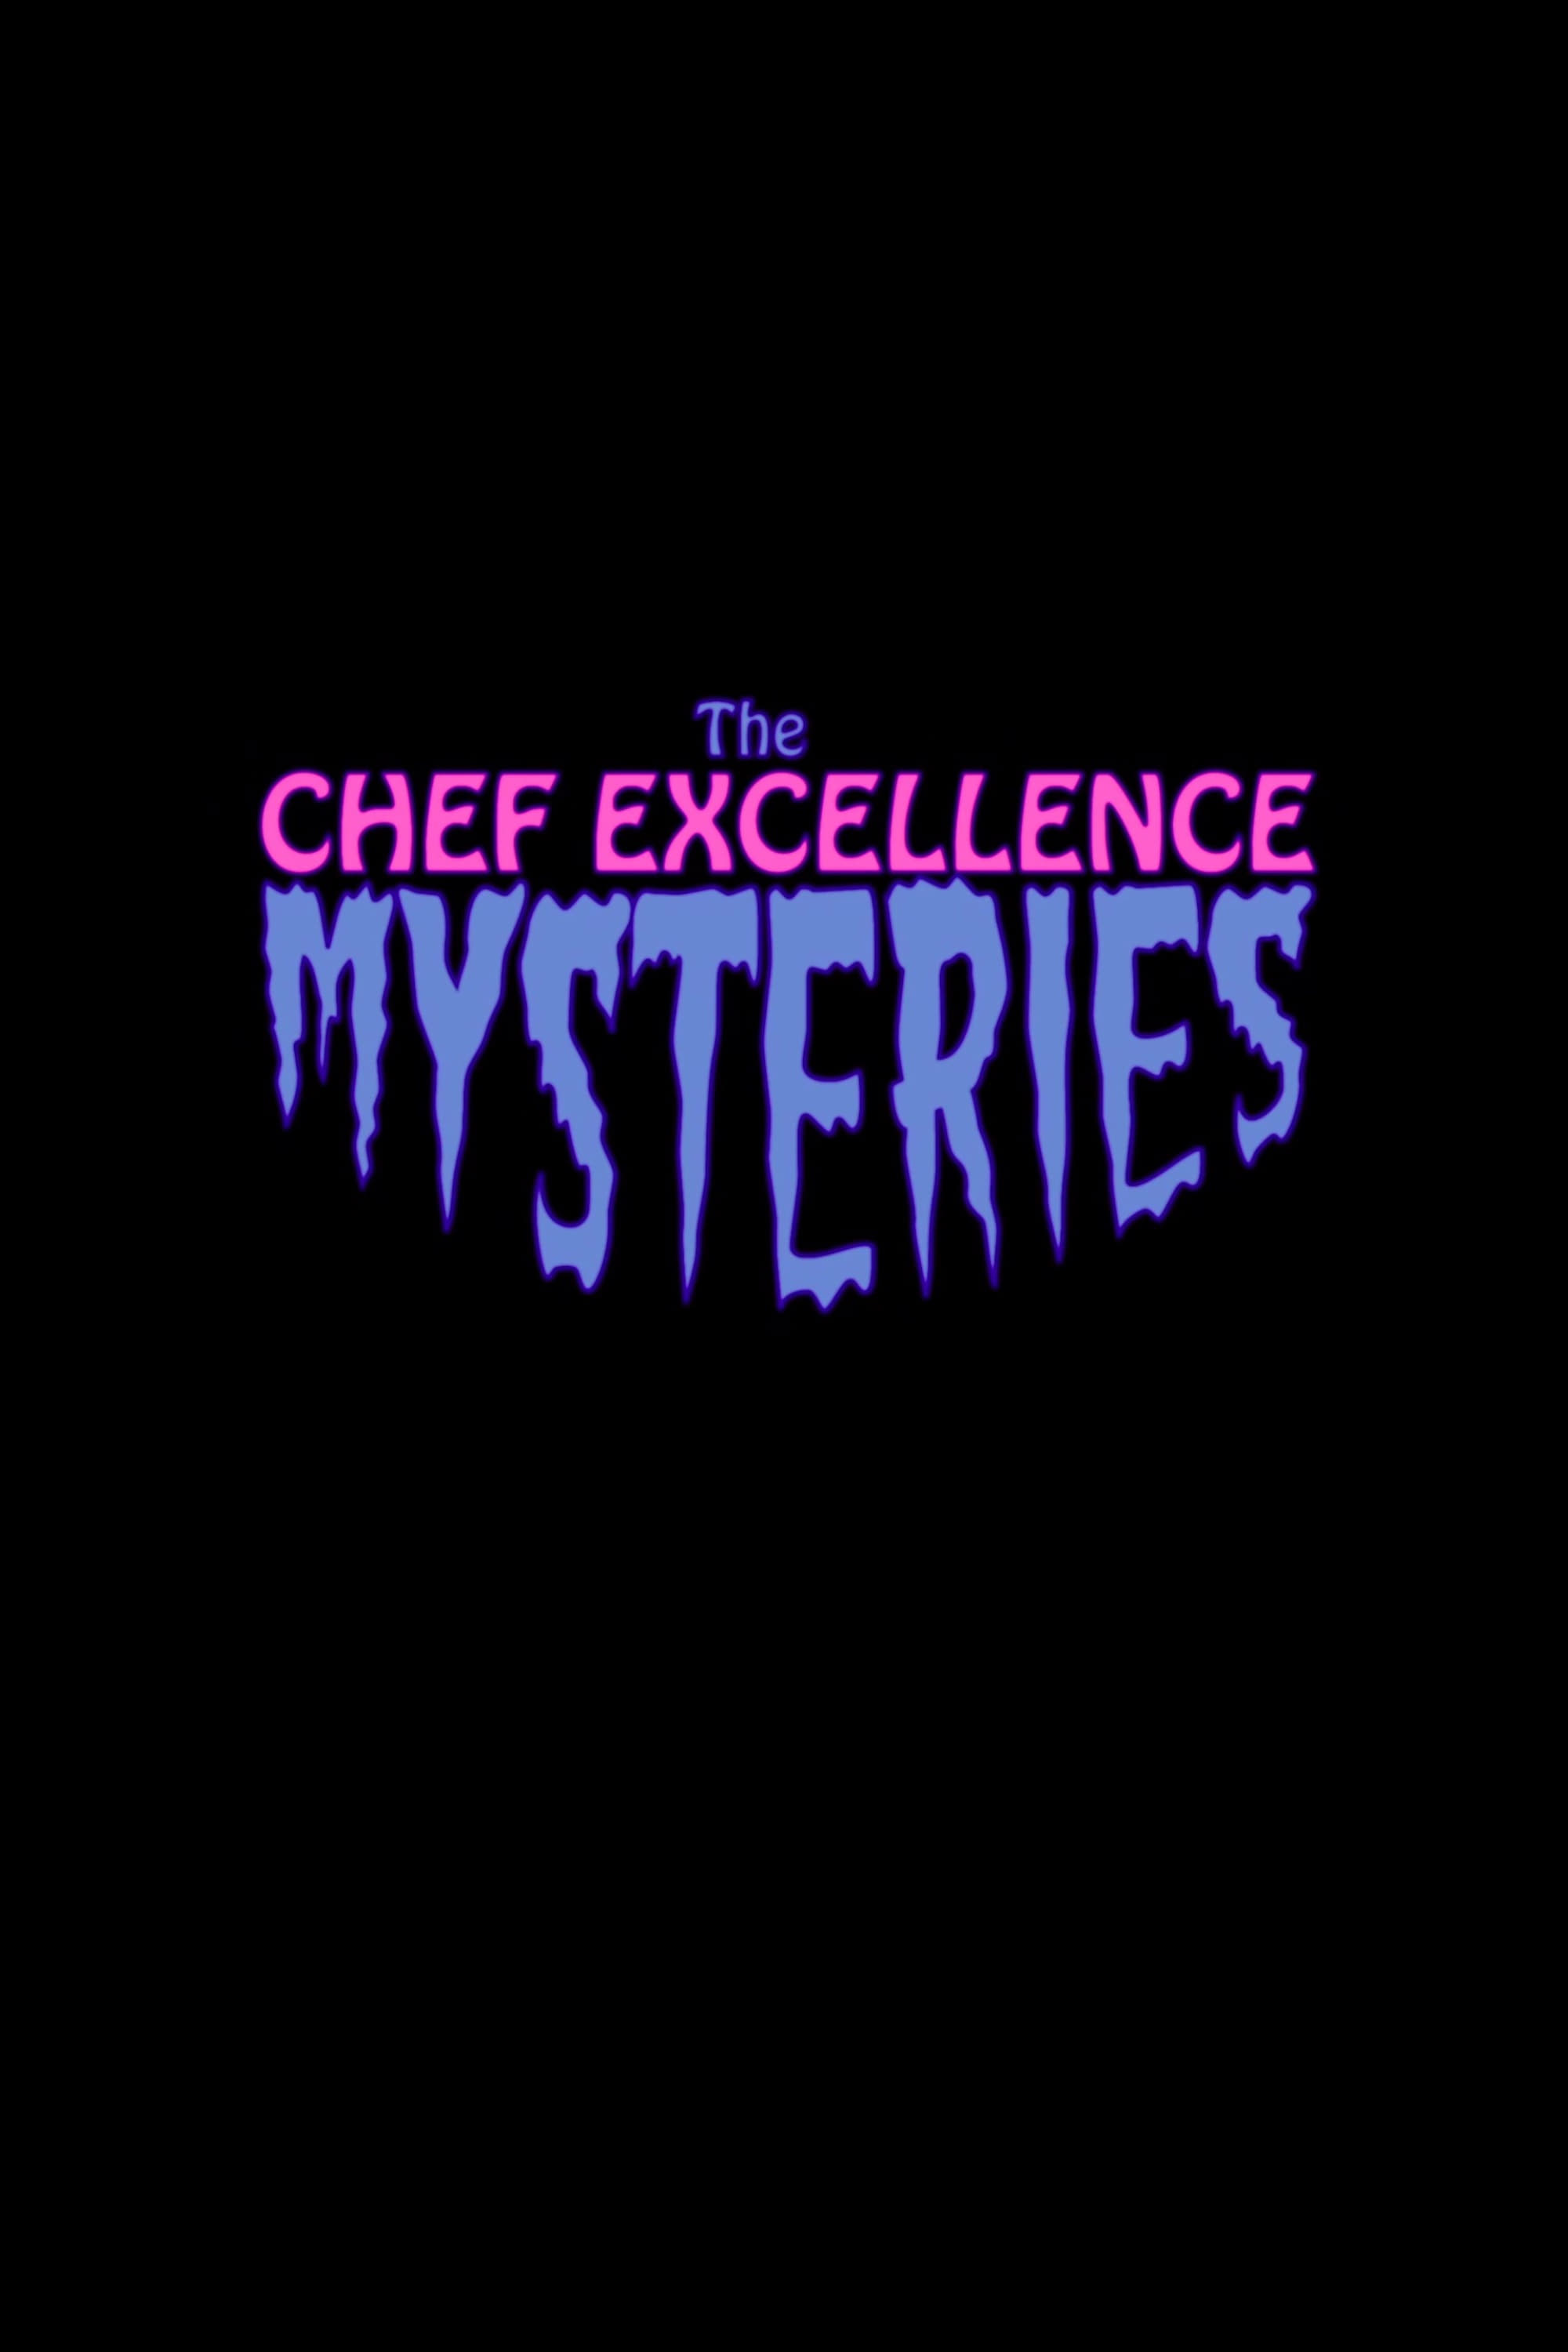 The Chef Excellence Mysteries TV Shows About Cartoon